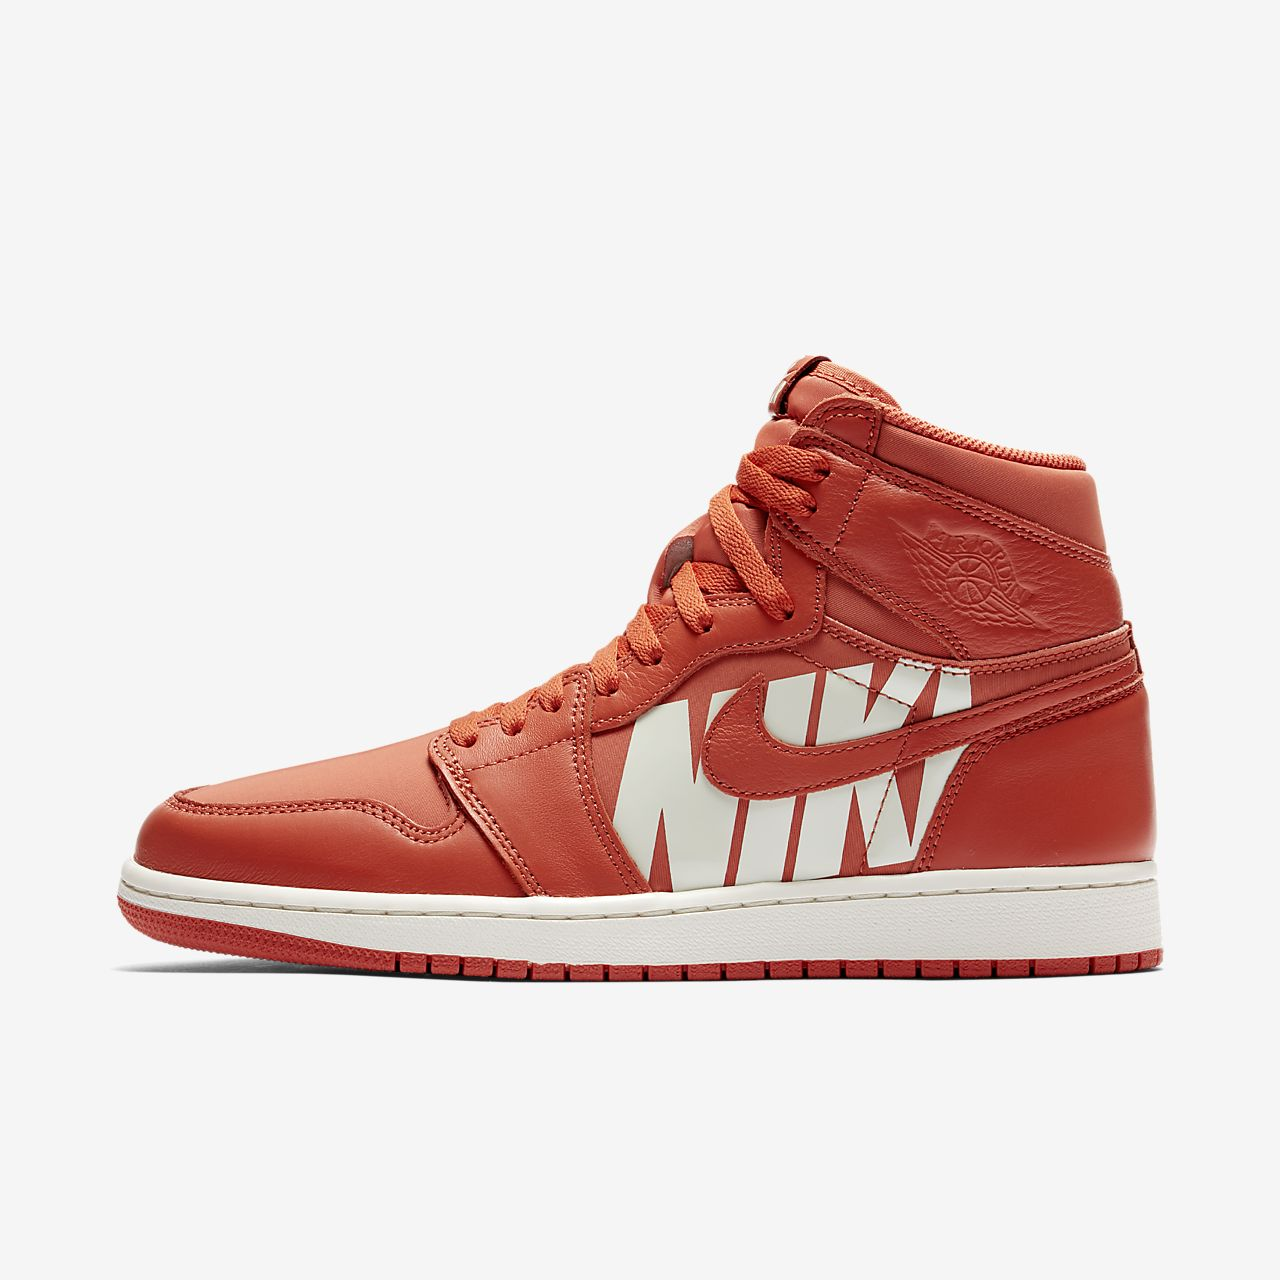 87e794e749b Air Jordan 1 Retro High OG Shoe. Nike.com CA